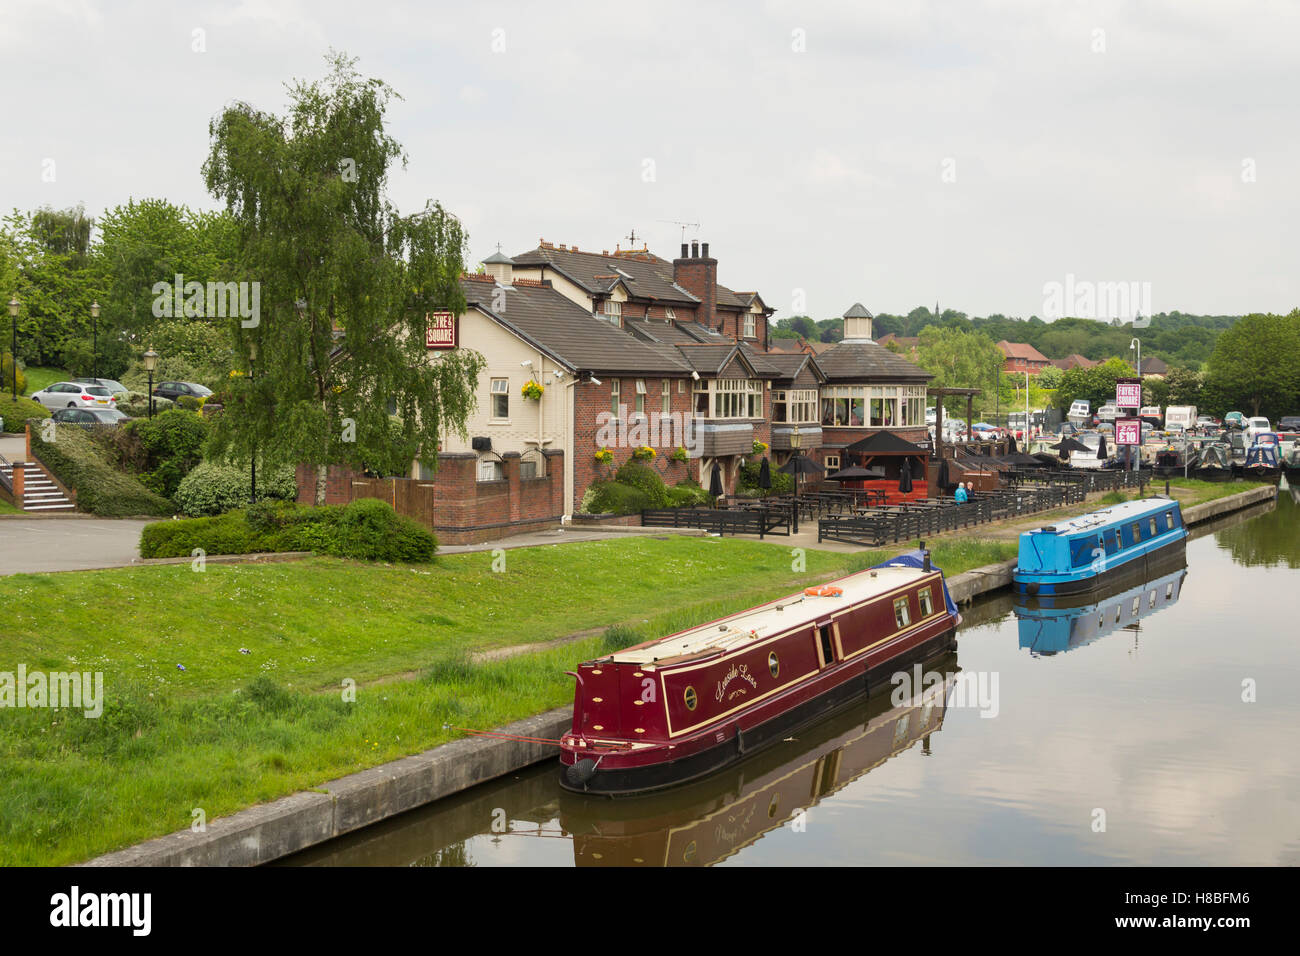 May 2016, Boothstown, Greater Manchester, UK. Narrowboats moored outside The Moorings pub on Boothstown marina on - Stock Image